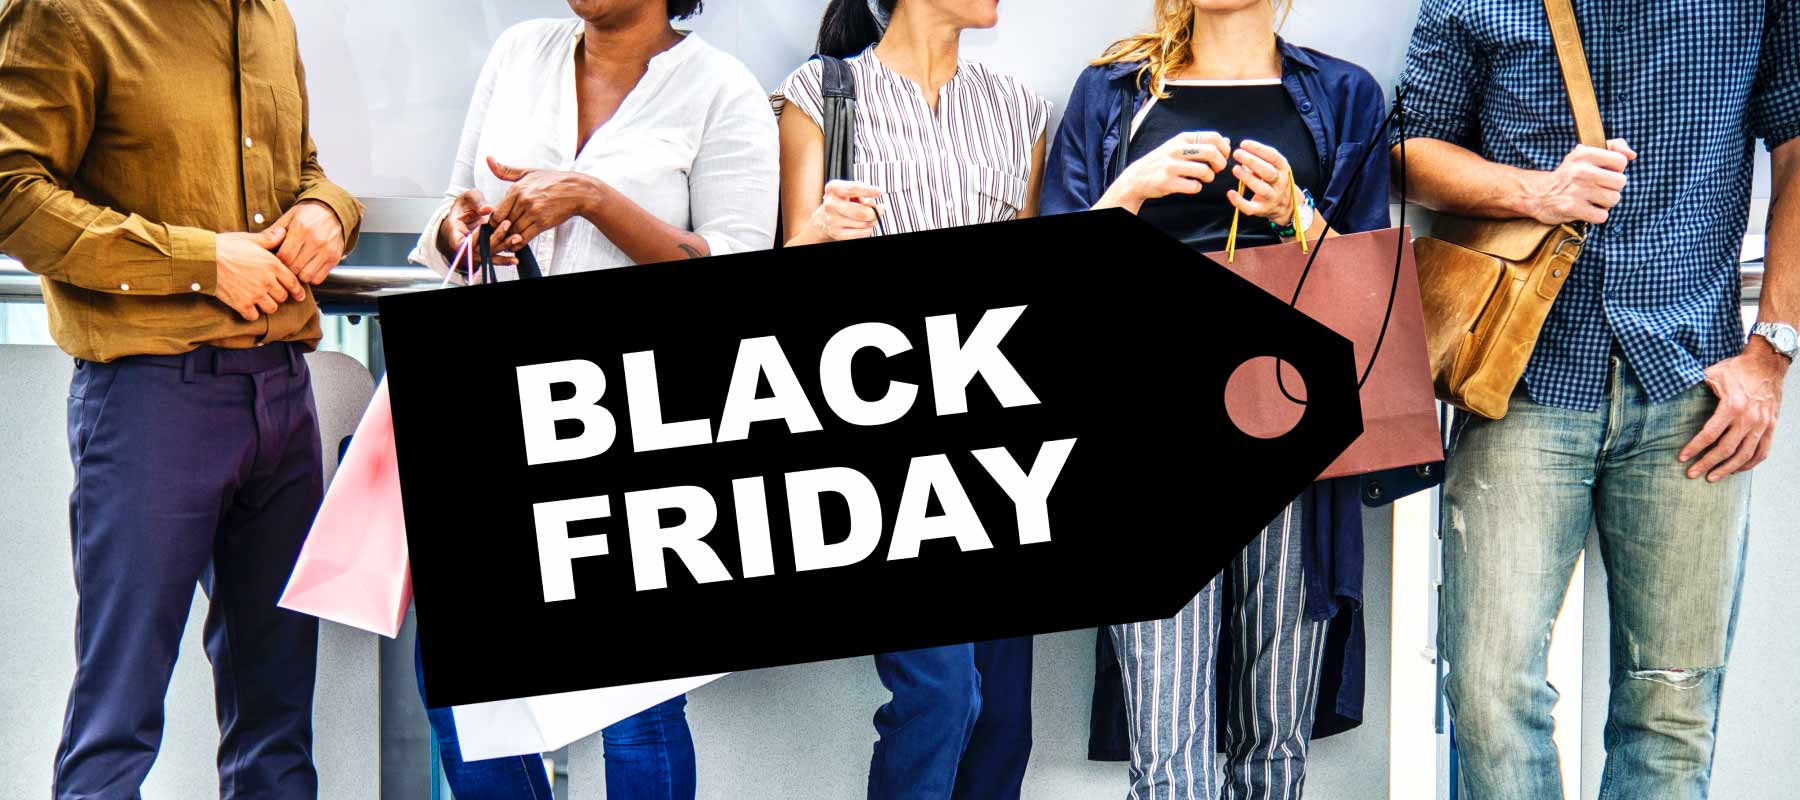 La febbre del Black Friday